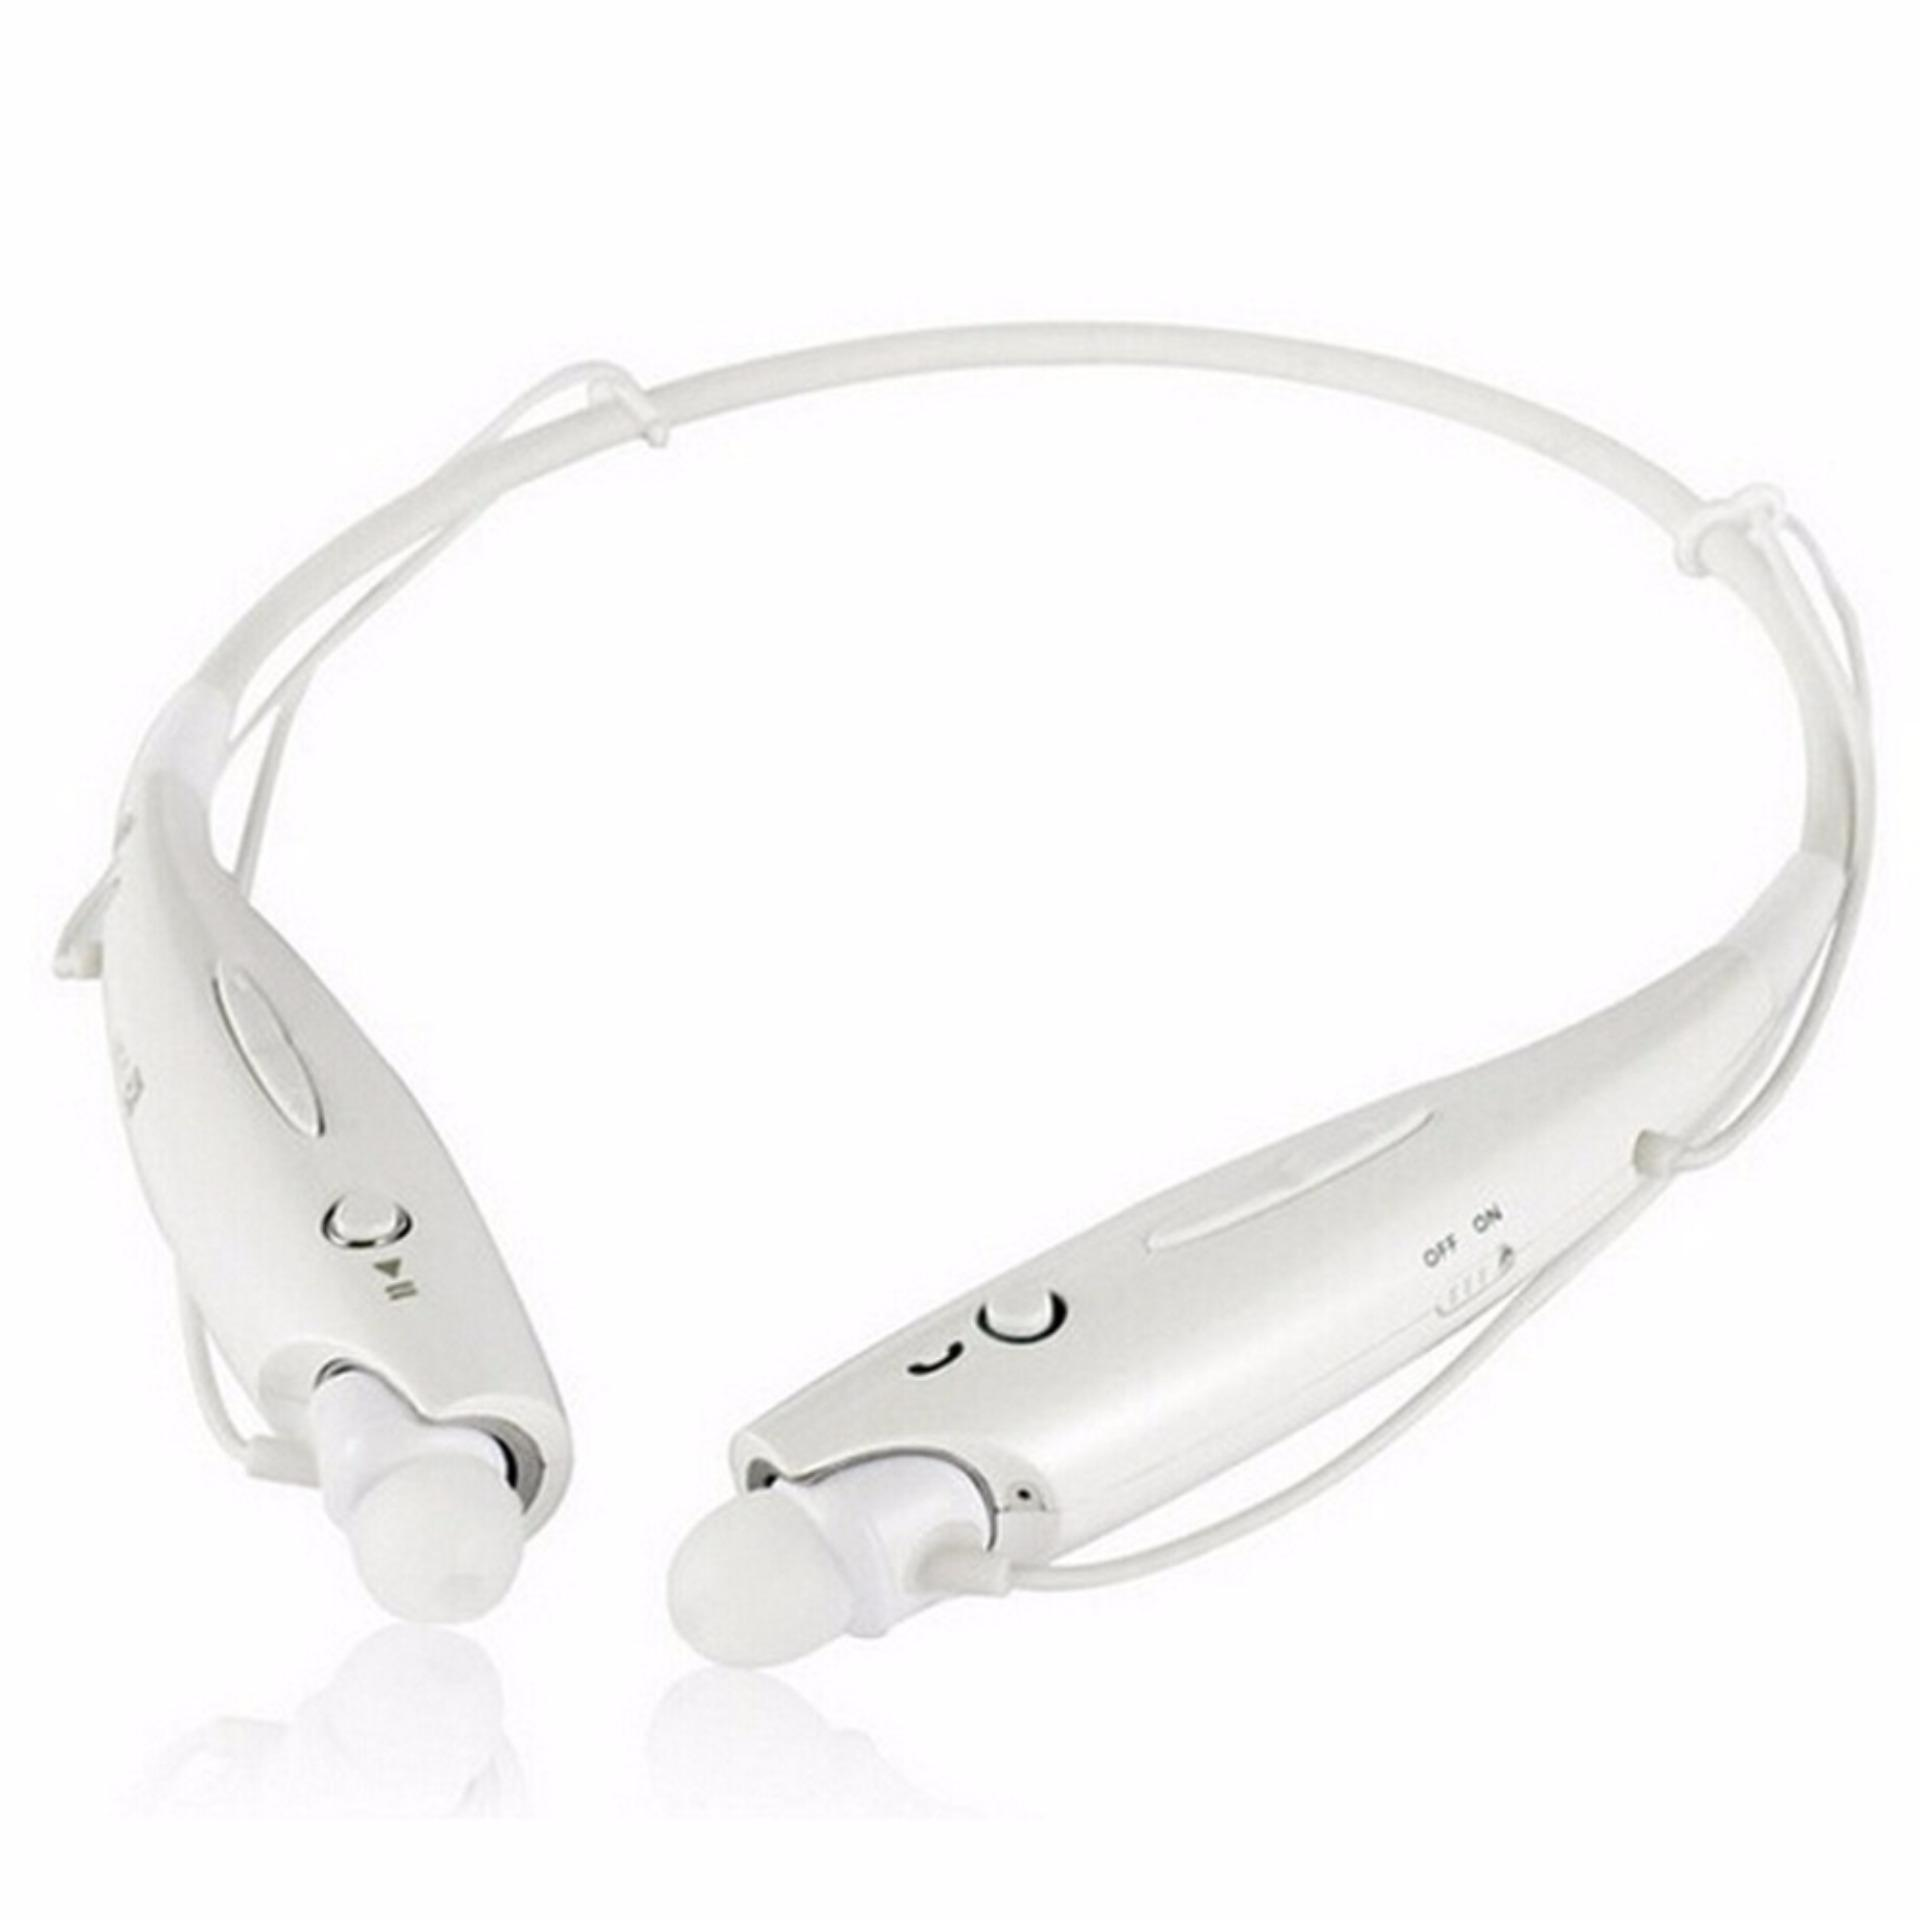 Jual Beli Samsung Bluetooth Headset Two Channel Mp3 Music Headphone Hbs 730